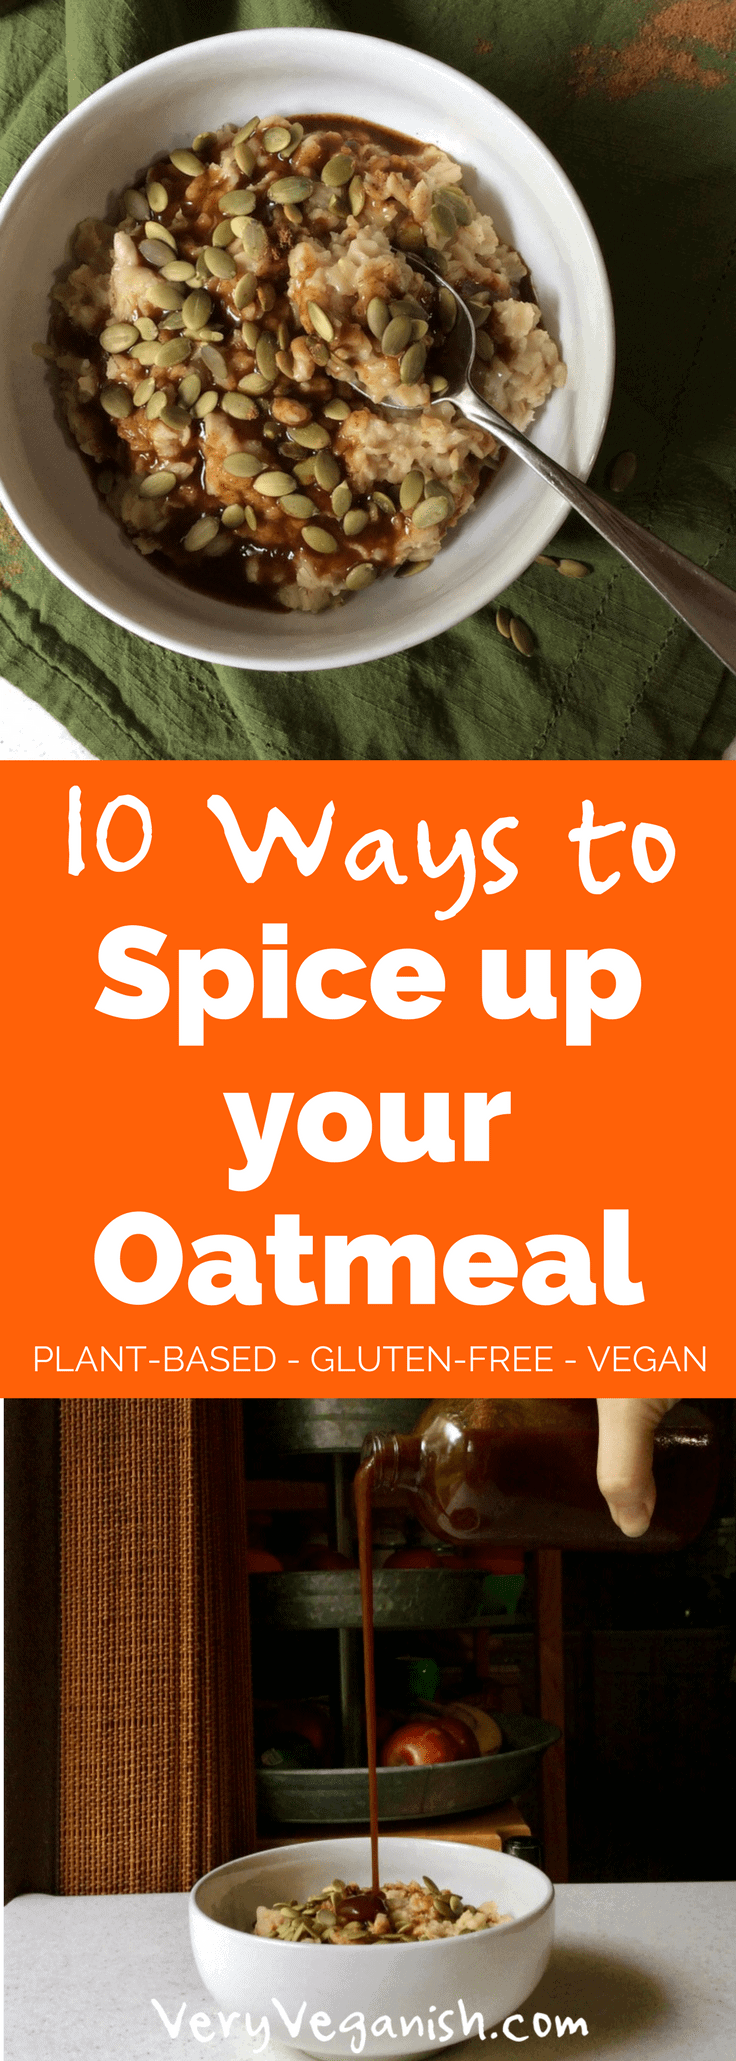 How to flavor your morning oats so they taste amazing. Vegan, plant-based and refined sugar free options. 10 Ways to Spice up your Oatmeal by Very Veganish